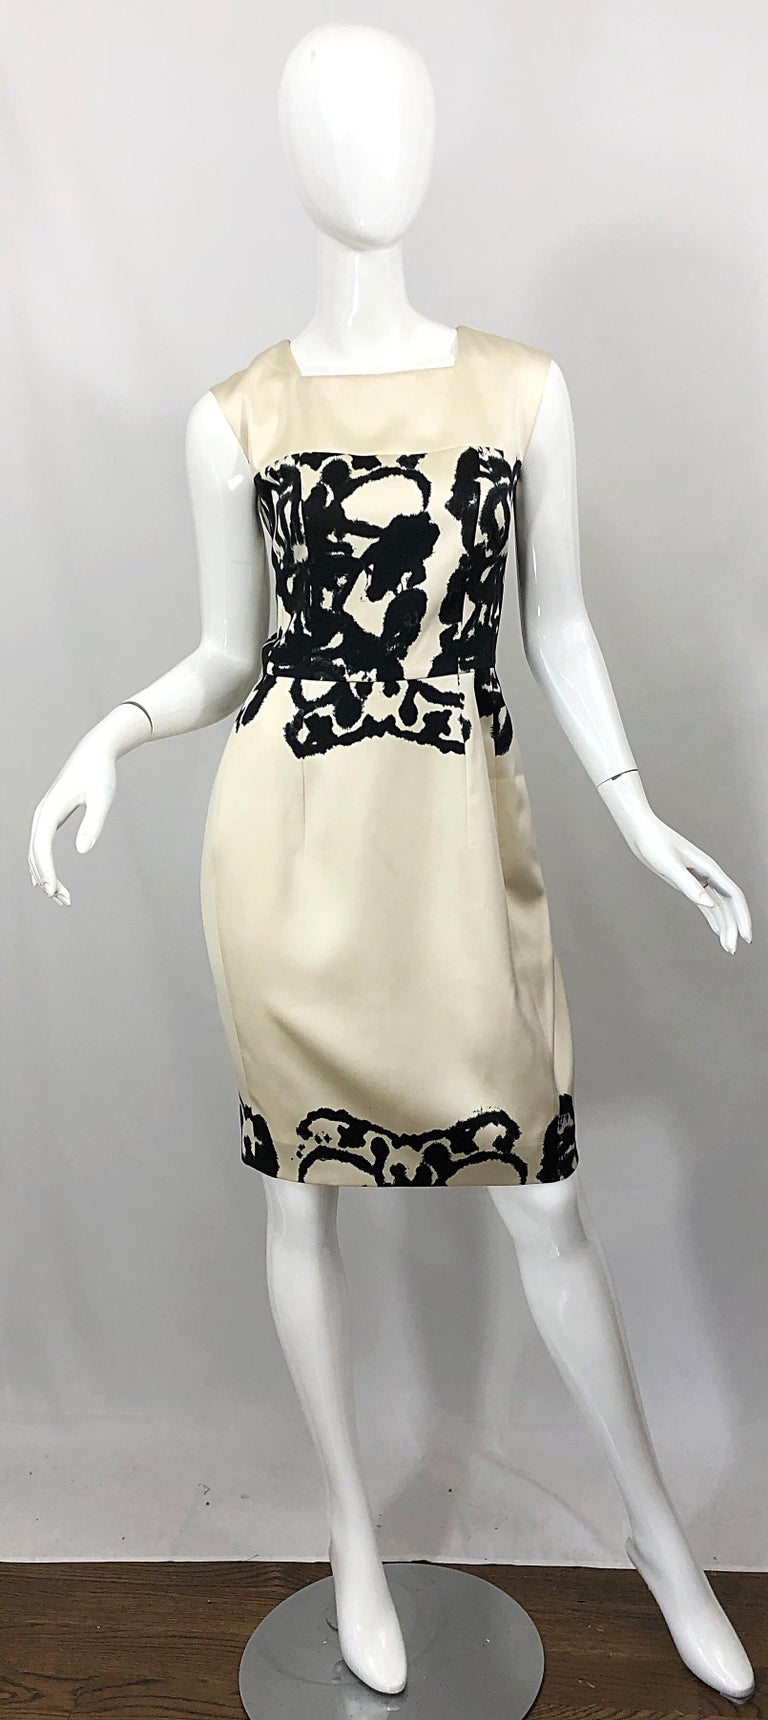 Chic brand new YVES SAINT LAURENT ( YSL ) ivory and black abstract print sleeveless silk dress! Sleek tailored bodice with a square neckline. Abstract black print on the front and back bodice and at bottom hem. Hidden zipper up the back with